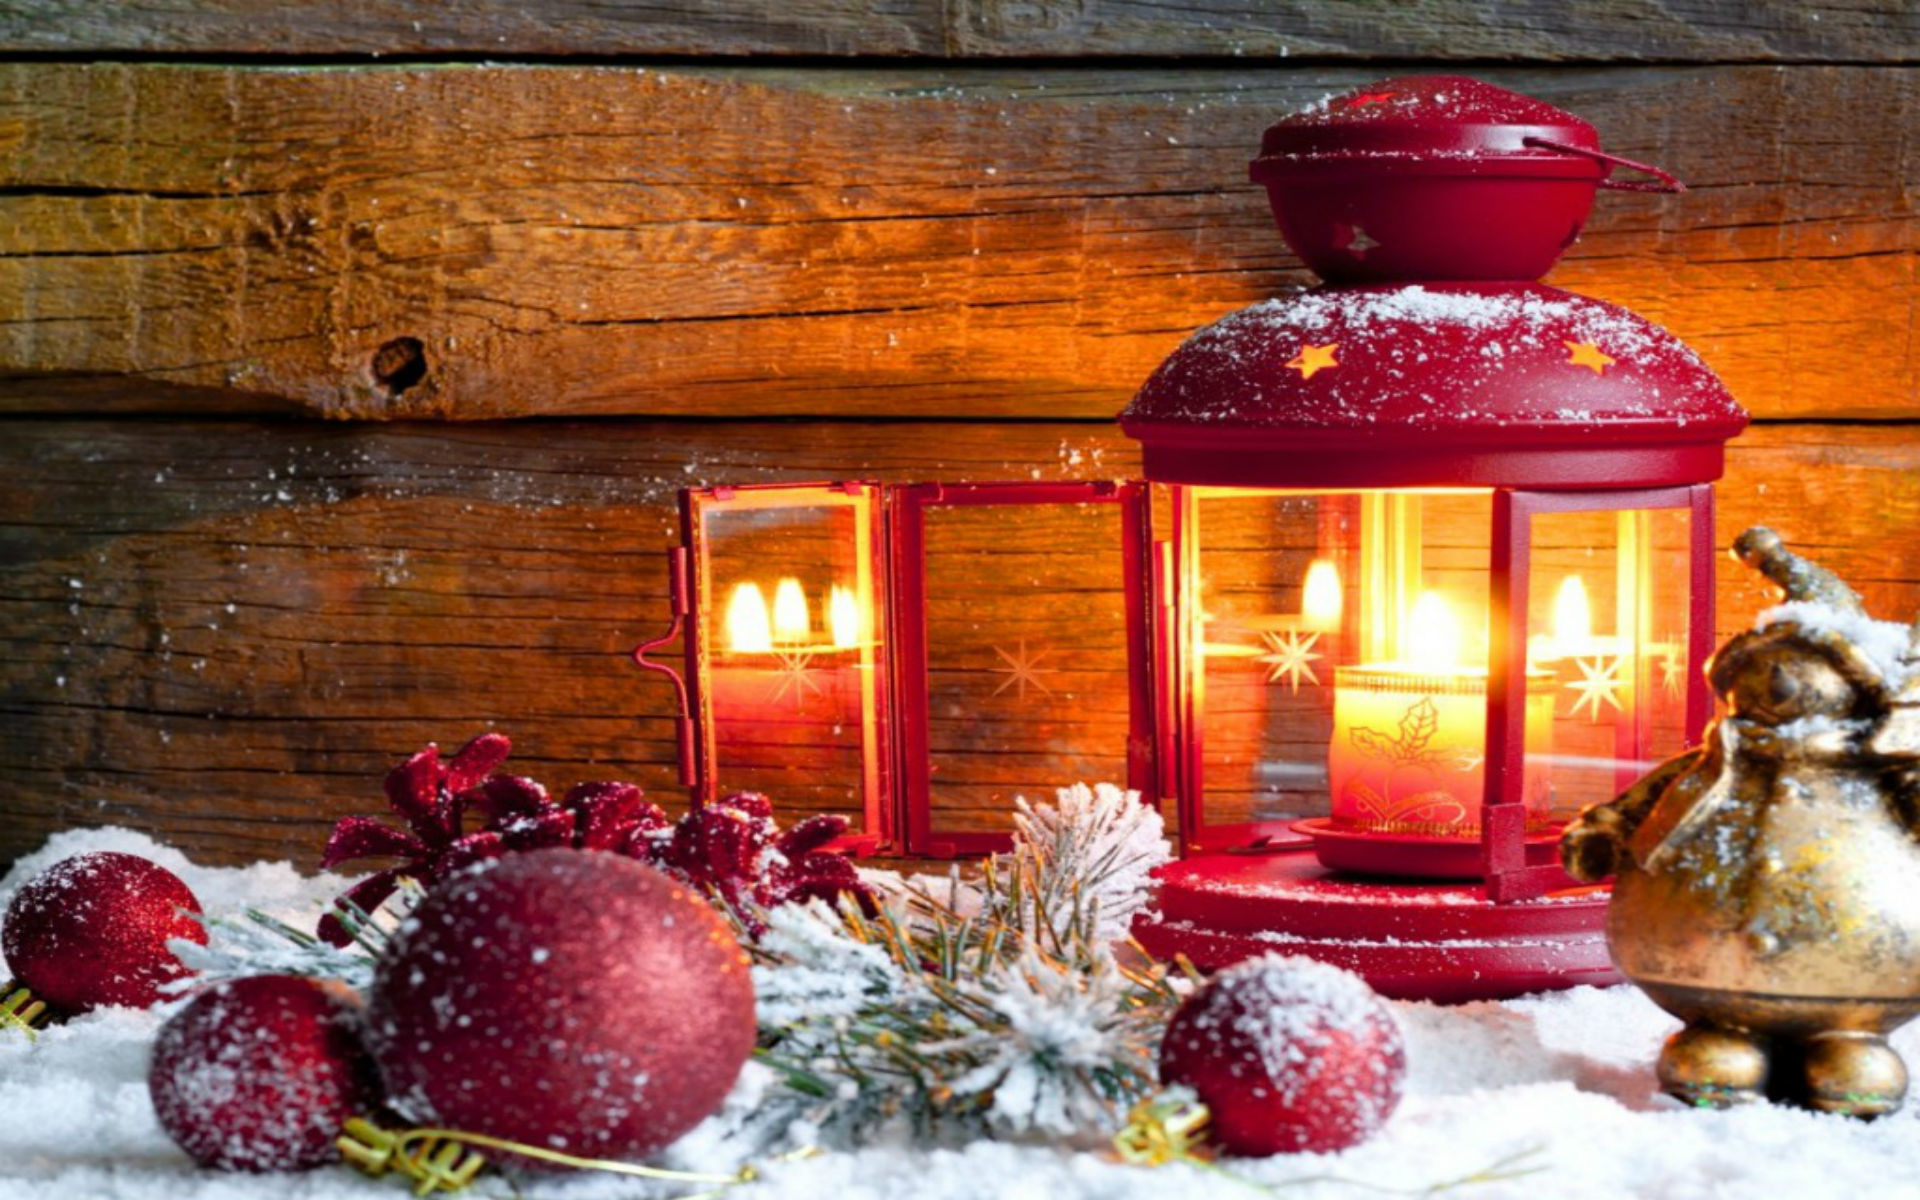 Res: 1920x1200, christmas fireplace wallpaper #725240